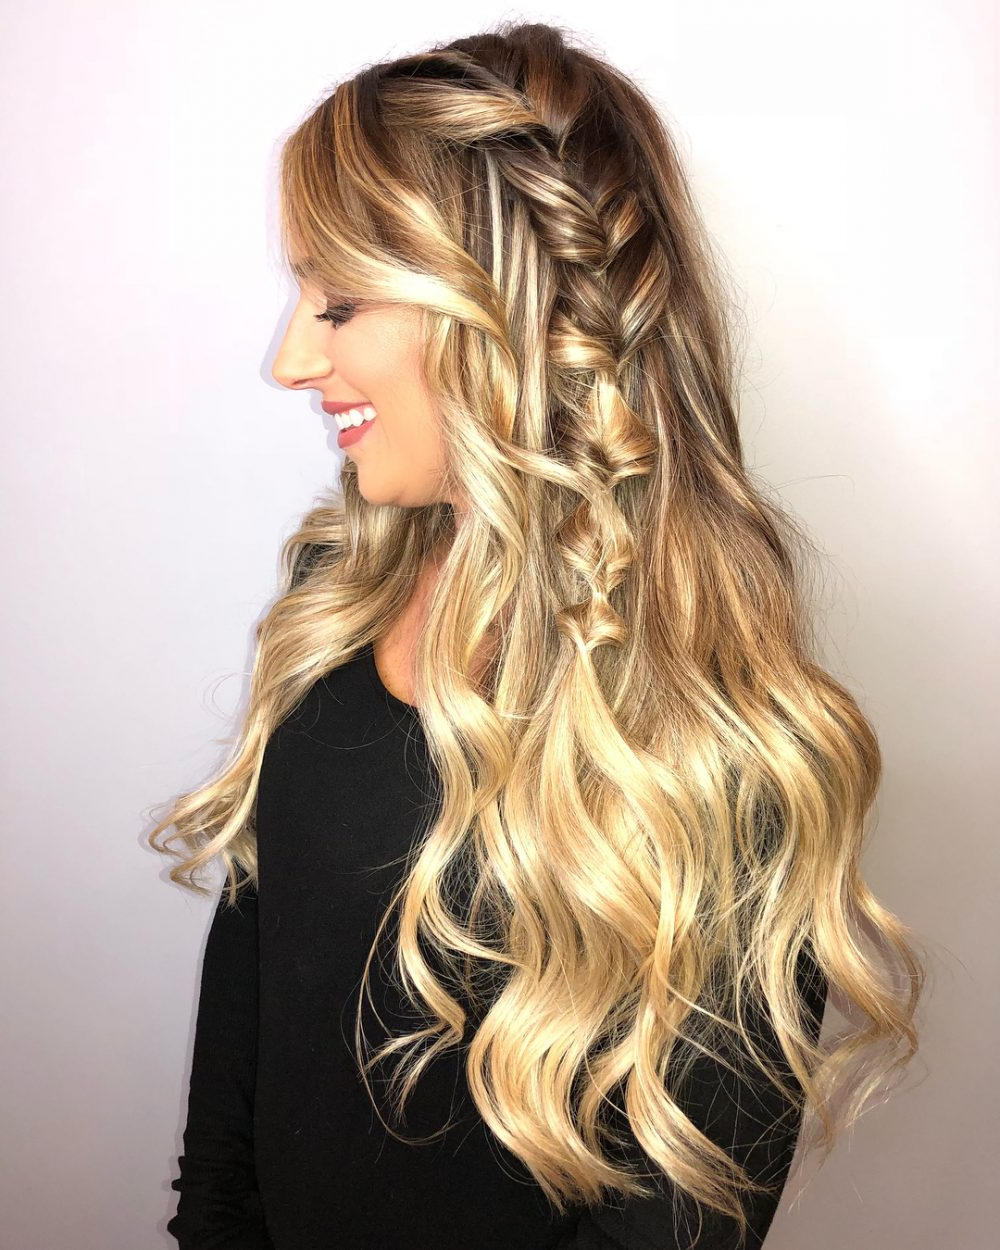 27 Easy Diy Date Night Hairstyles For 2019 In Best And Newest Destructed Messy Curly Bun Hairstyles For Wedding (View 3 of 20)